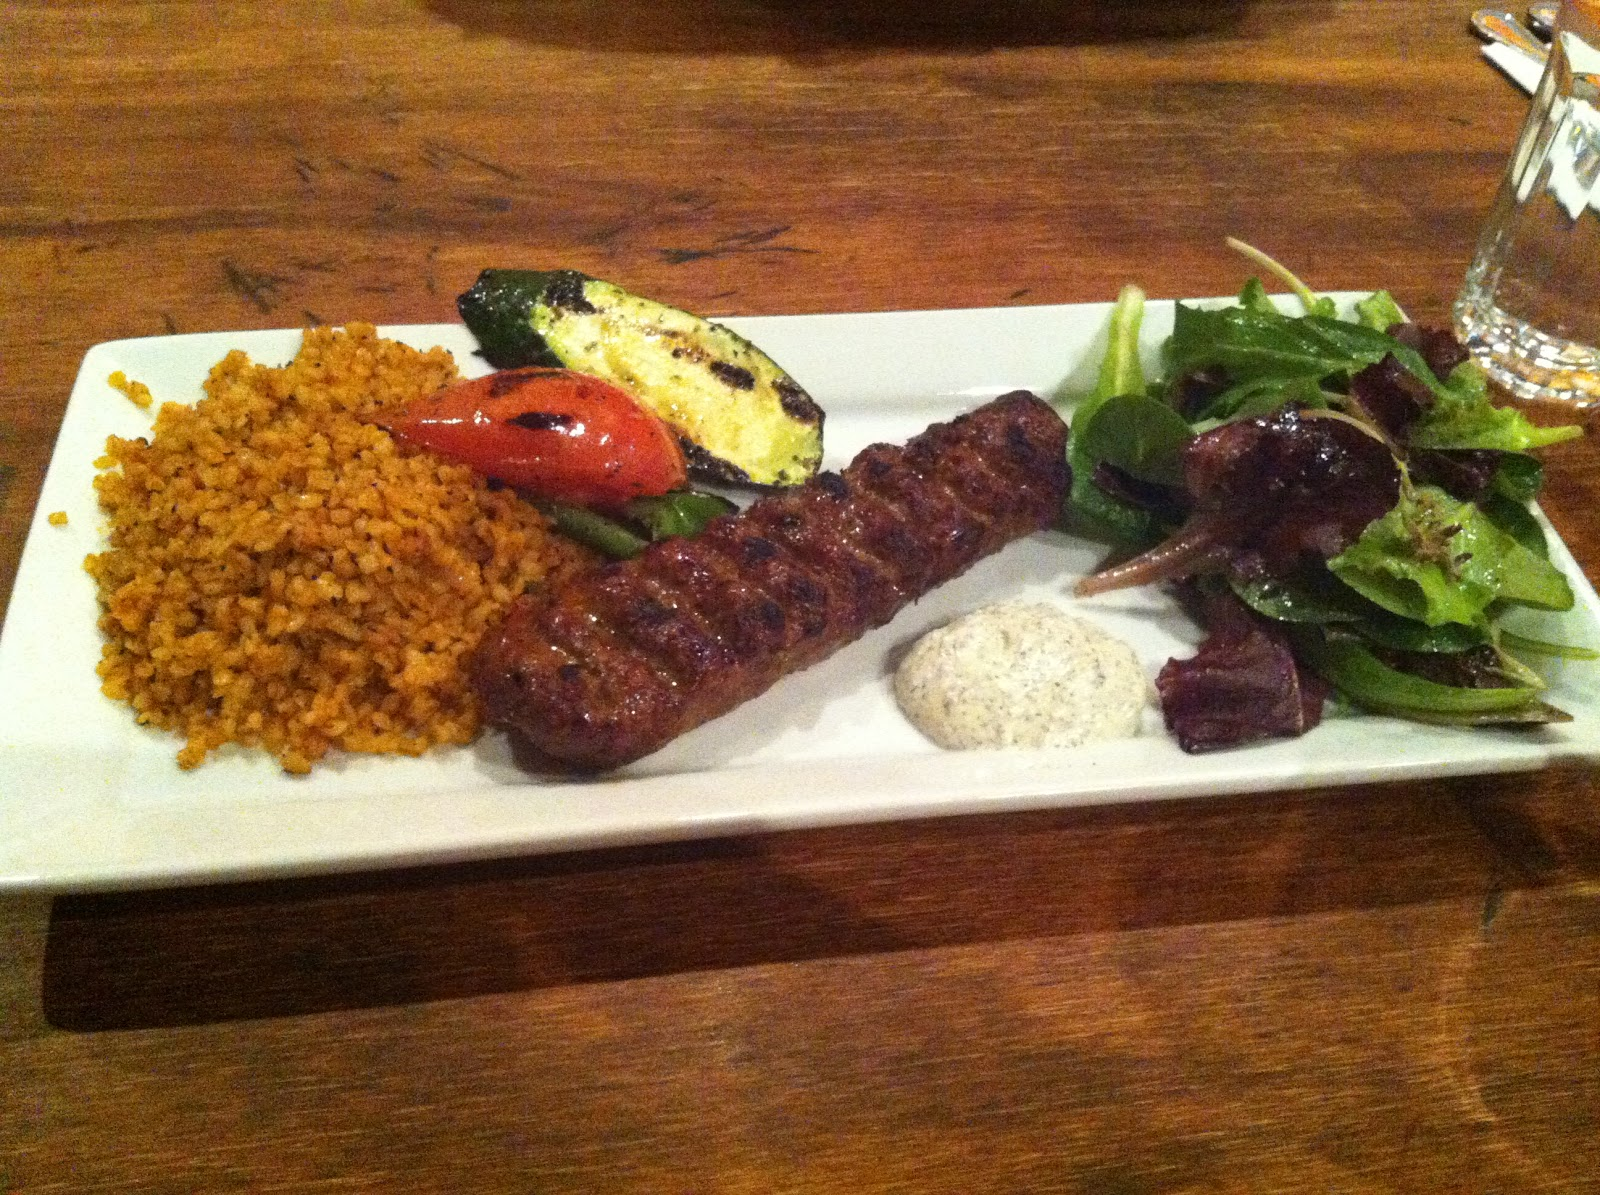 All eric can eat sofra authentic turkish cuisine for Authentic turkish cuisine